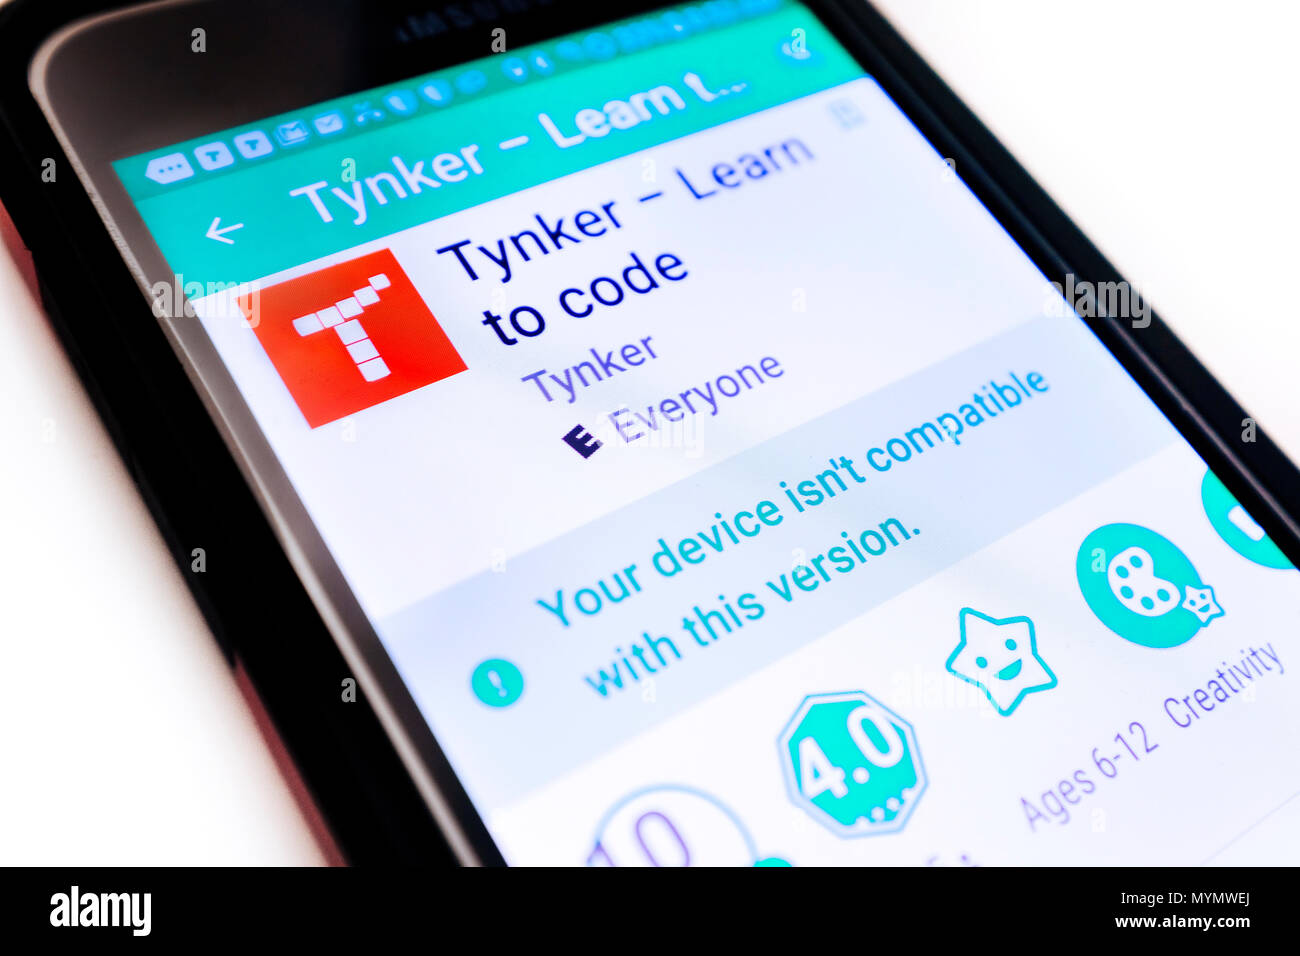 Illustrative Editorial image of a Samsung smartphone with the Tynker App logo on the screen. - Stock Image